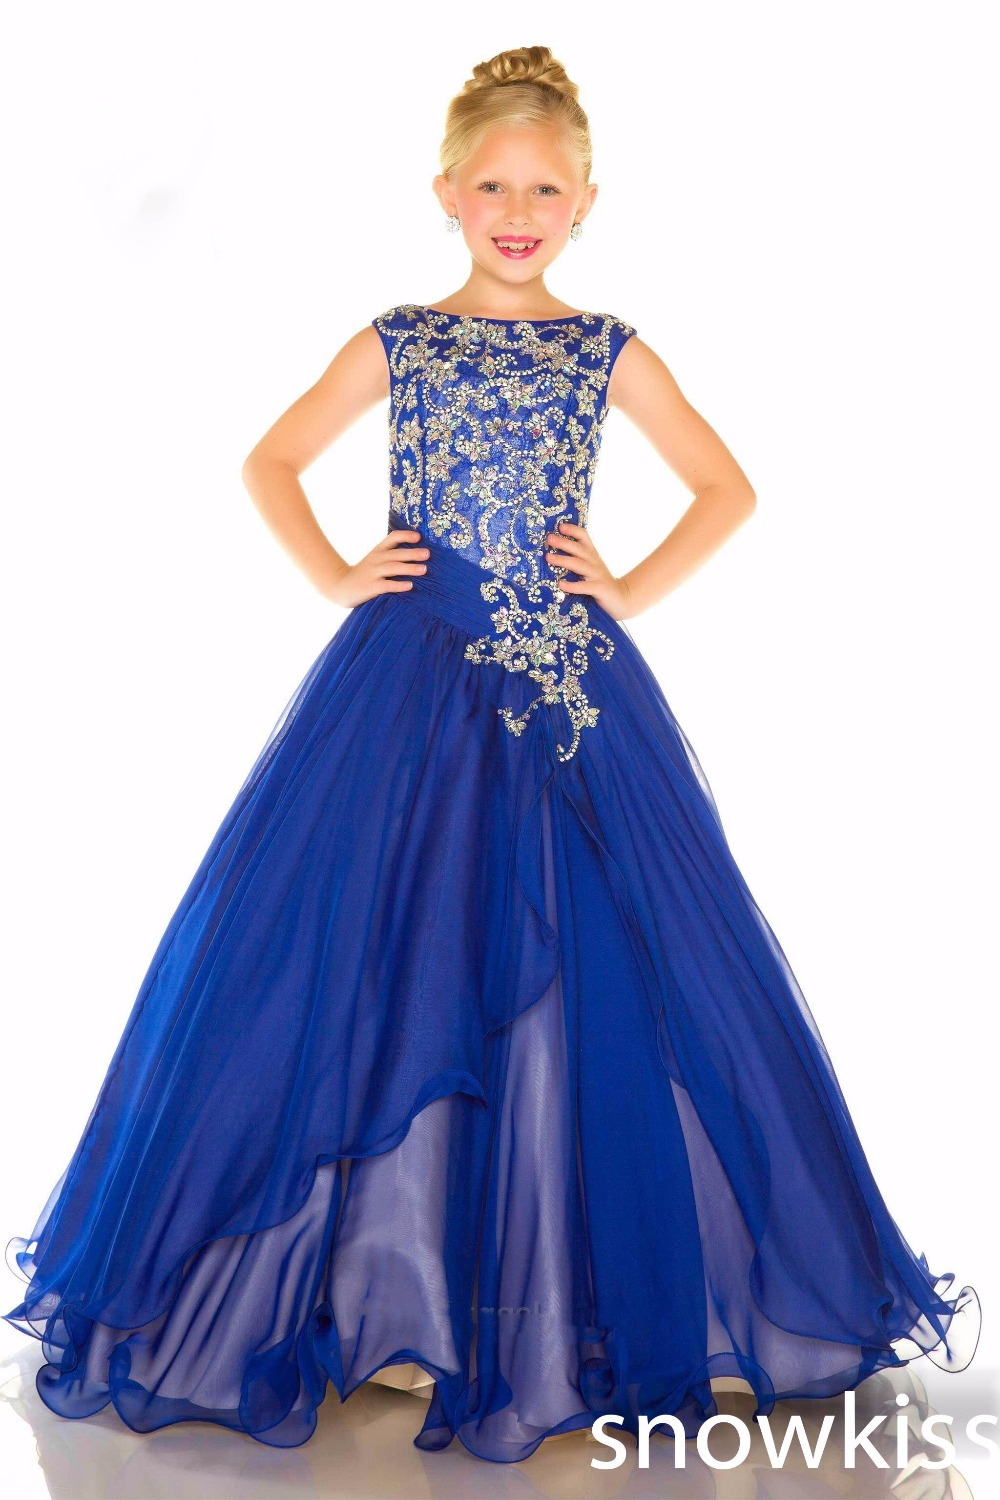 2016 new royal blue beaded crystals glitz little girls dresses charming A-line evening party prom gowns  pageant interview suits<br><br>Aliexpress